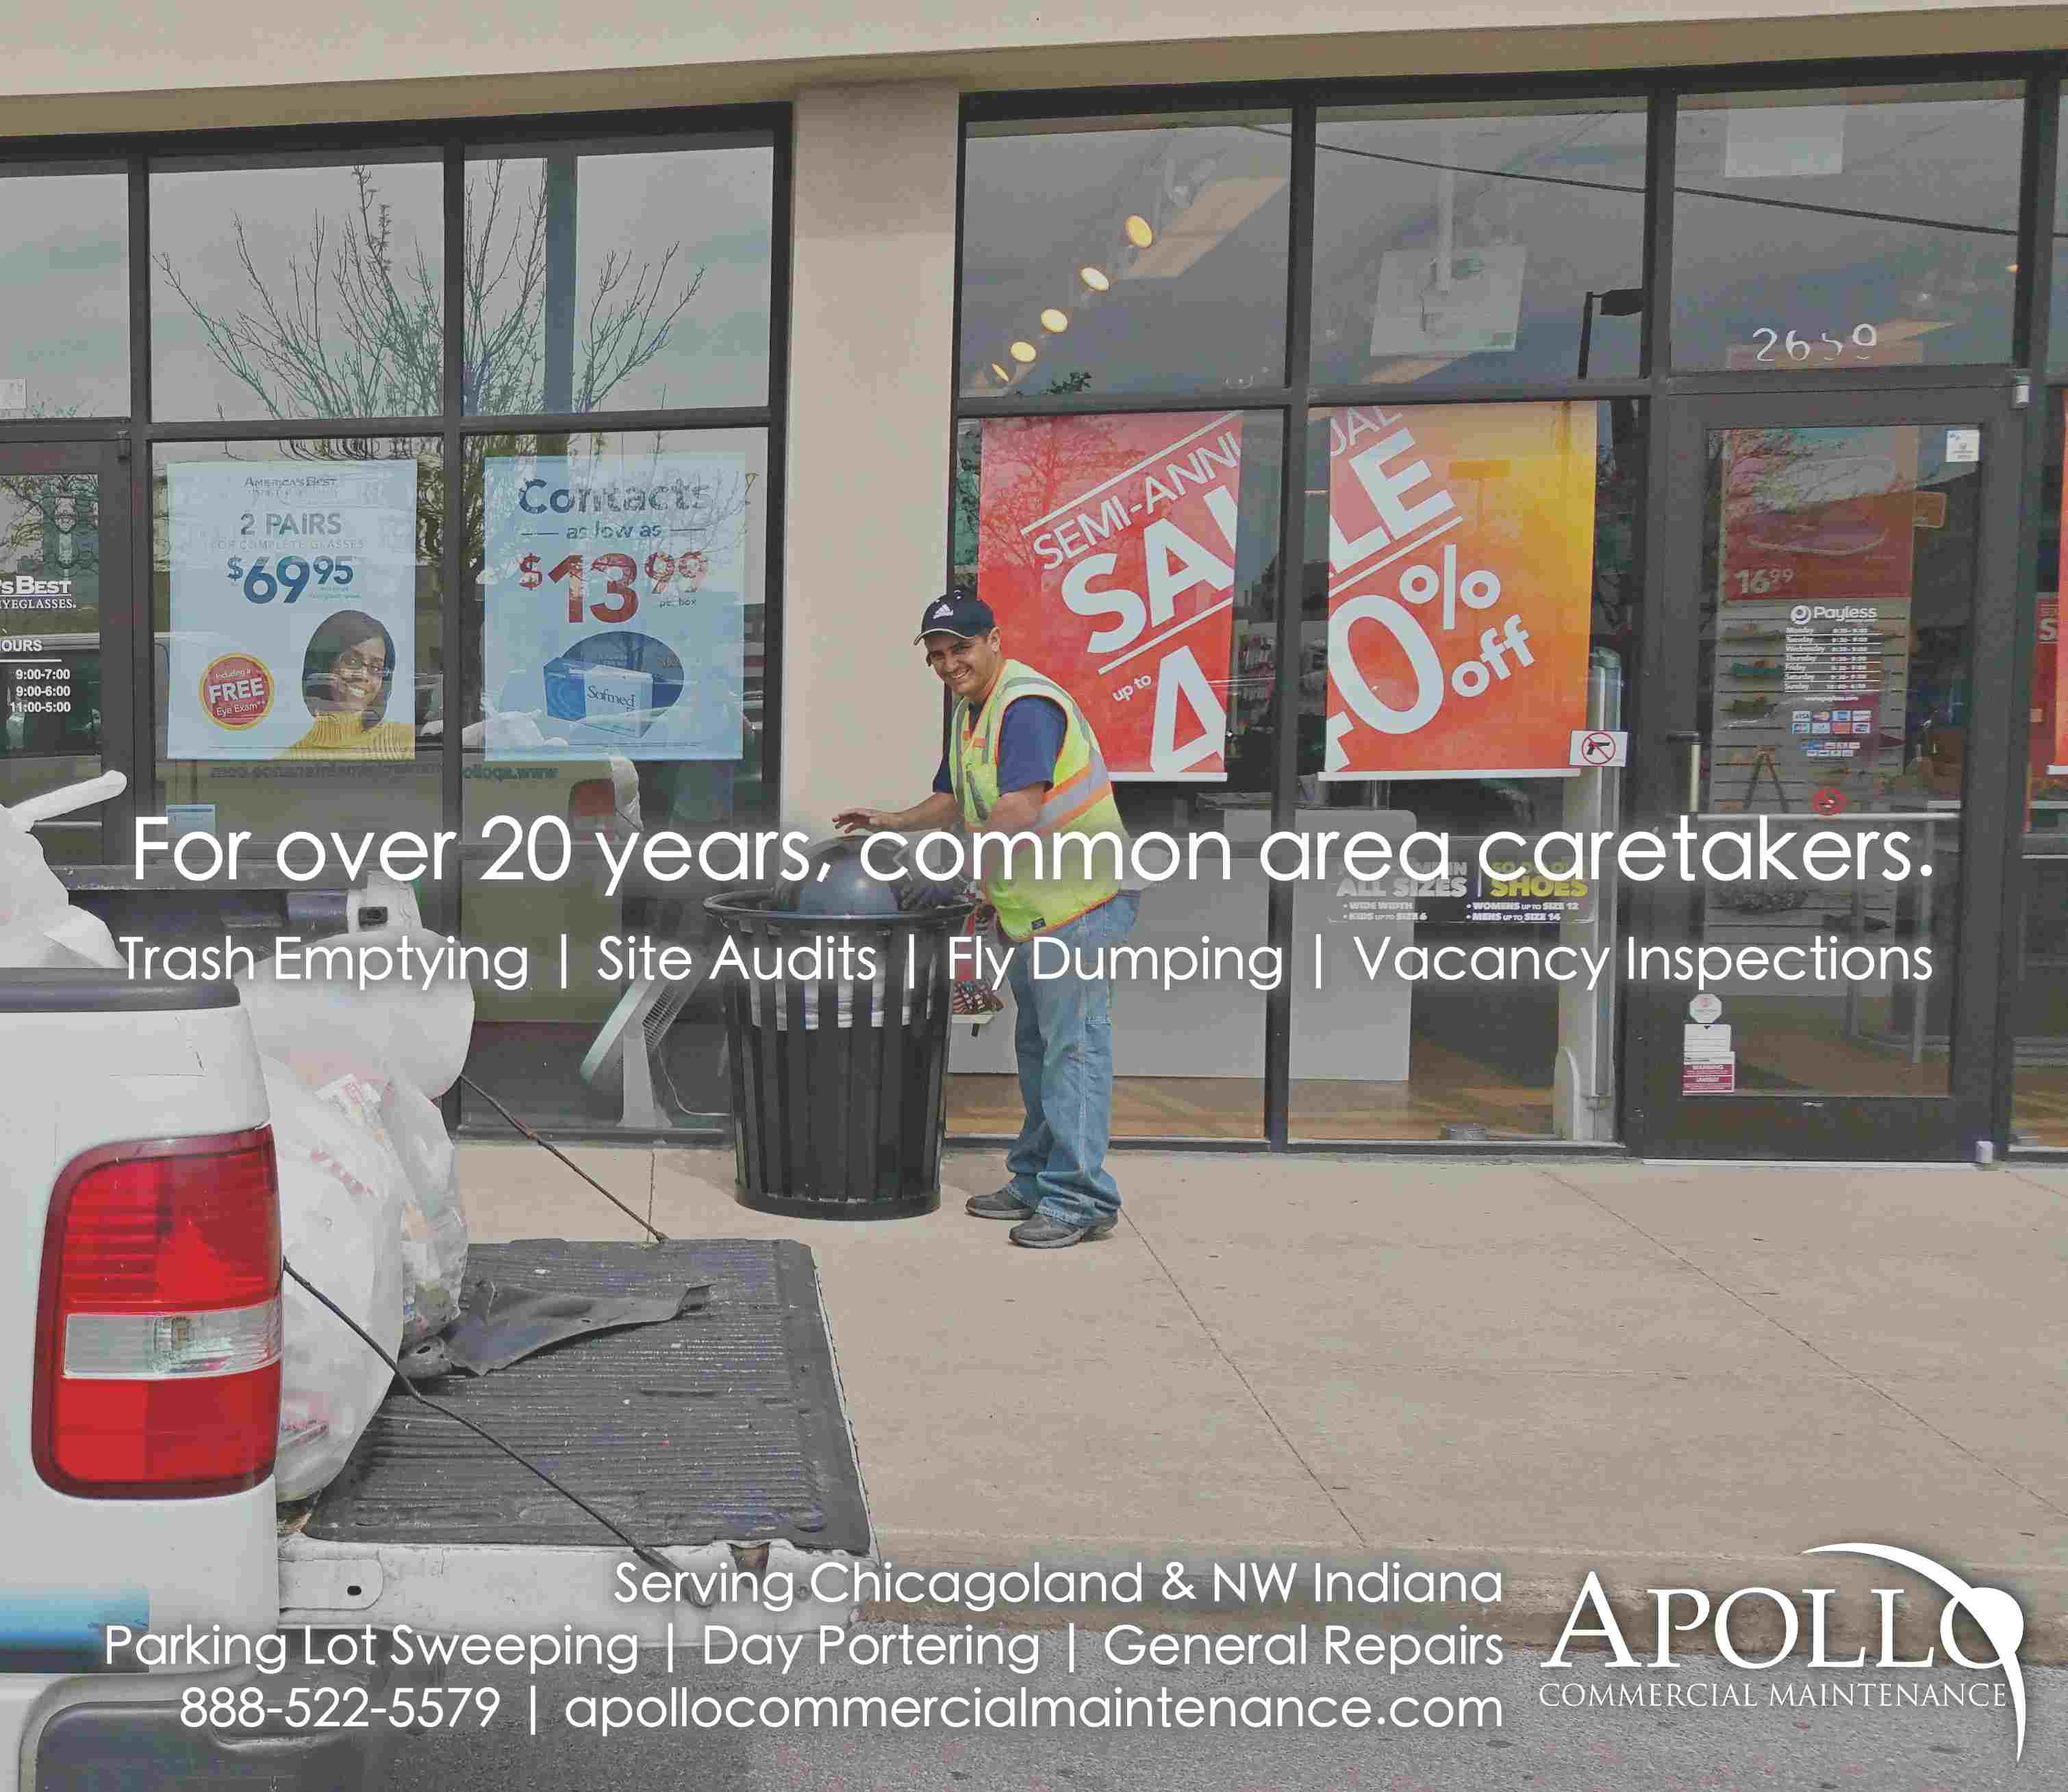 Parking Lot Sweeping - Day Portering - Apollo Commercial Maintenance